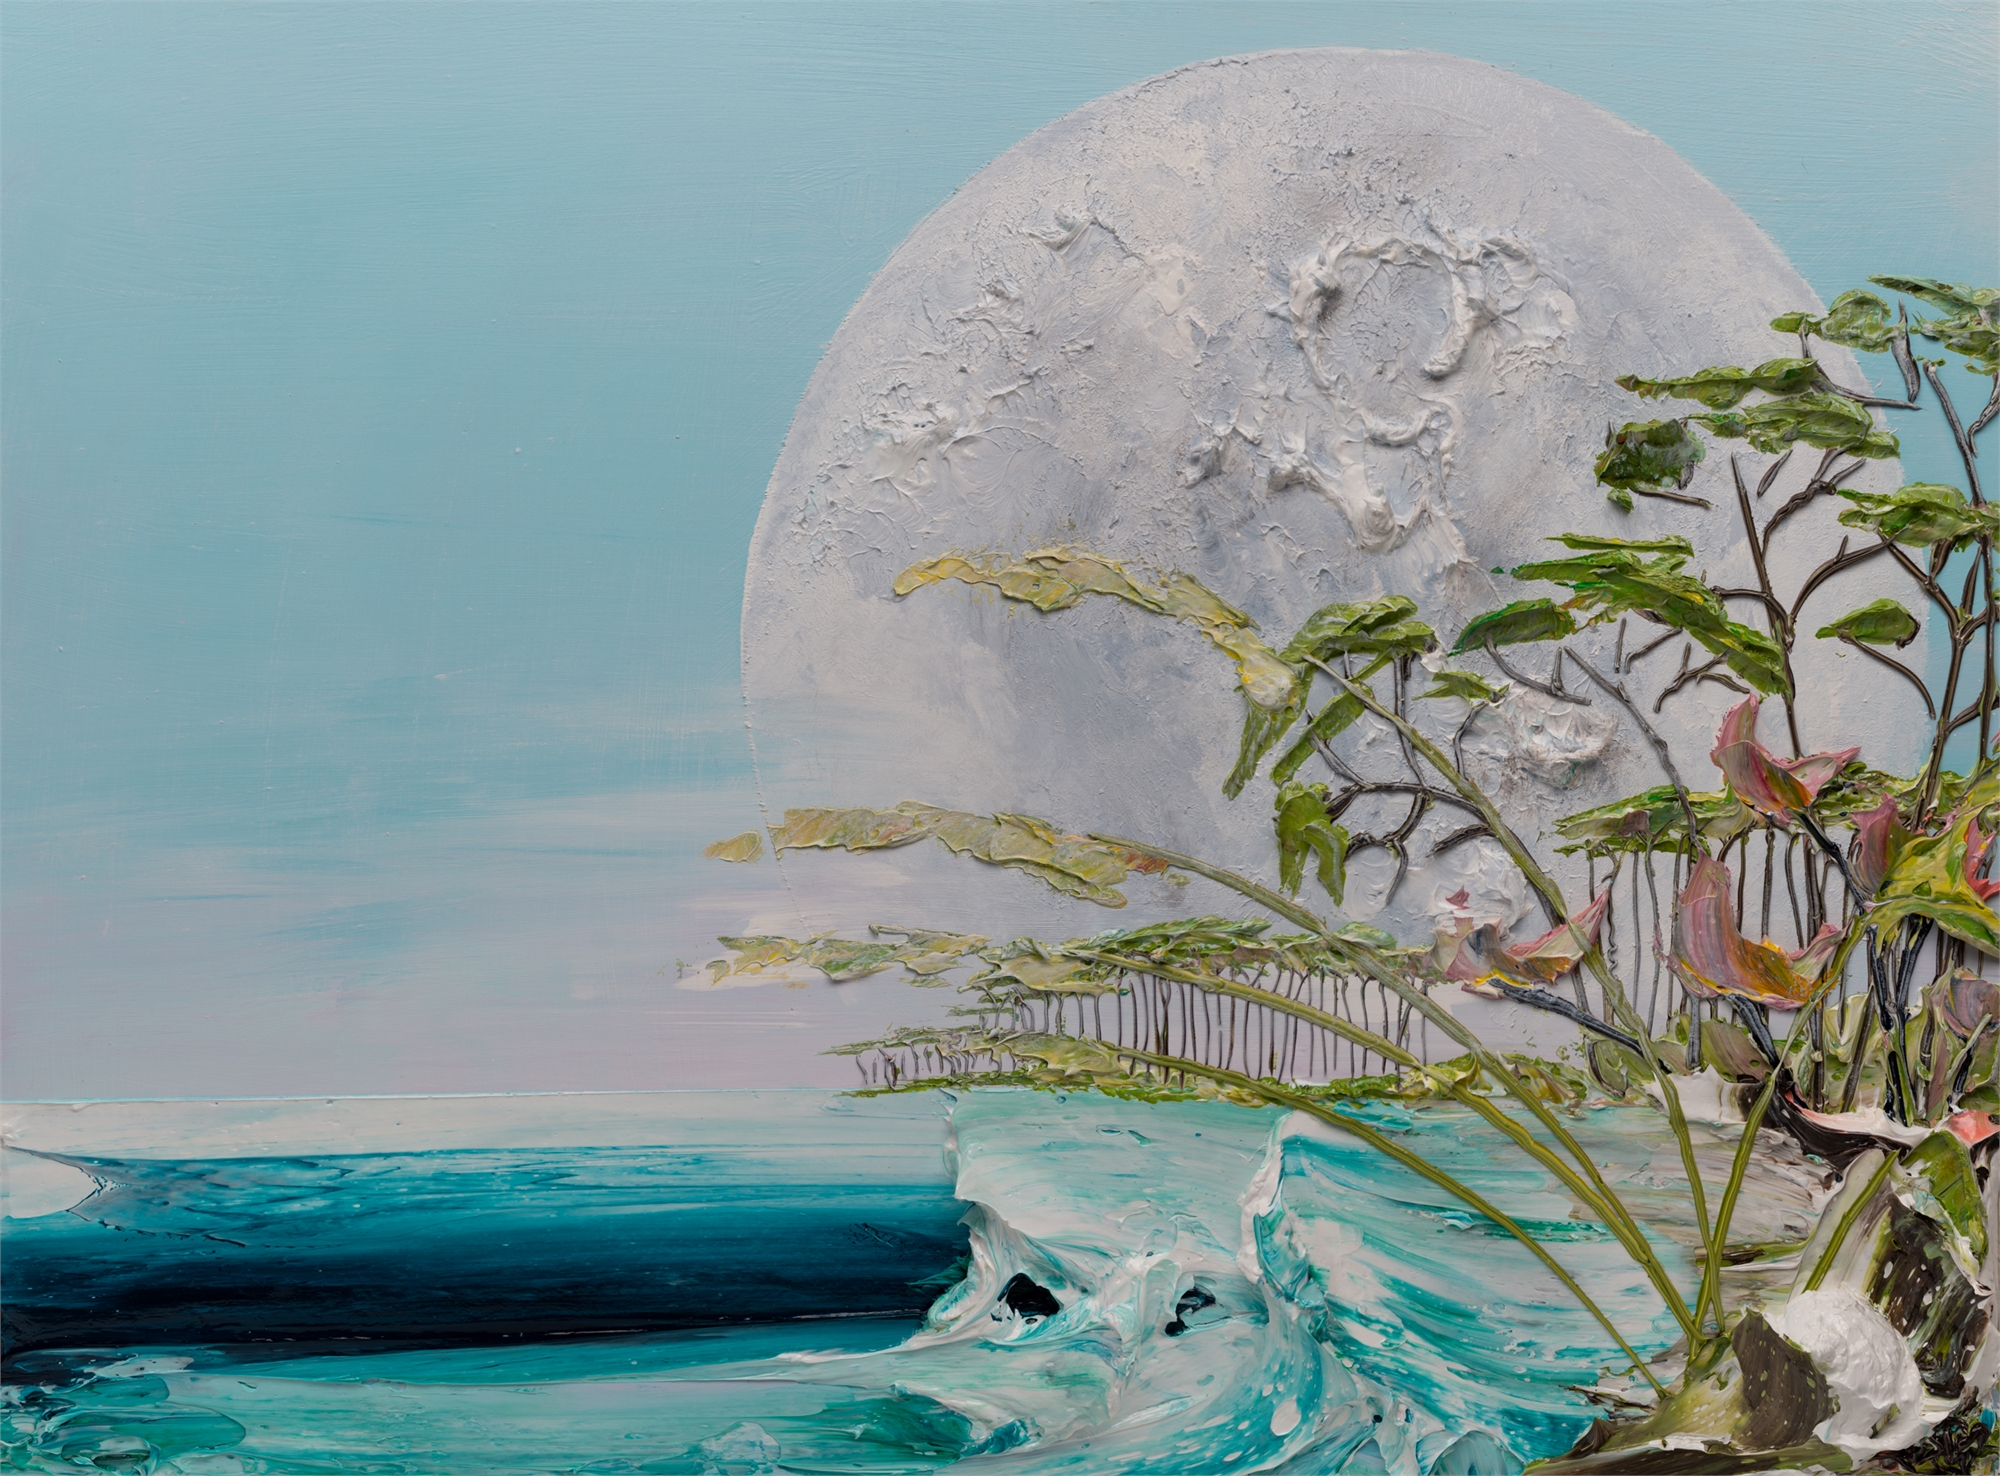 MOONSCAPE -MS-40X30-2019-240 by JUSTIN GAFFREY